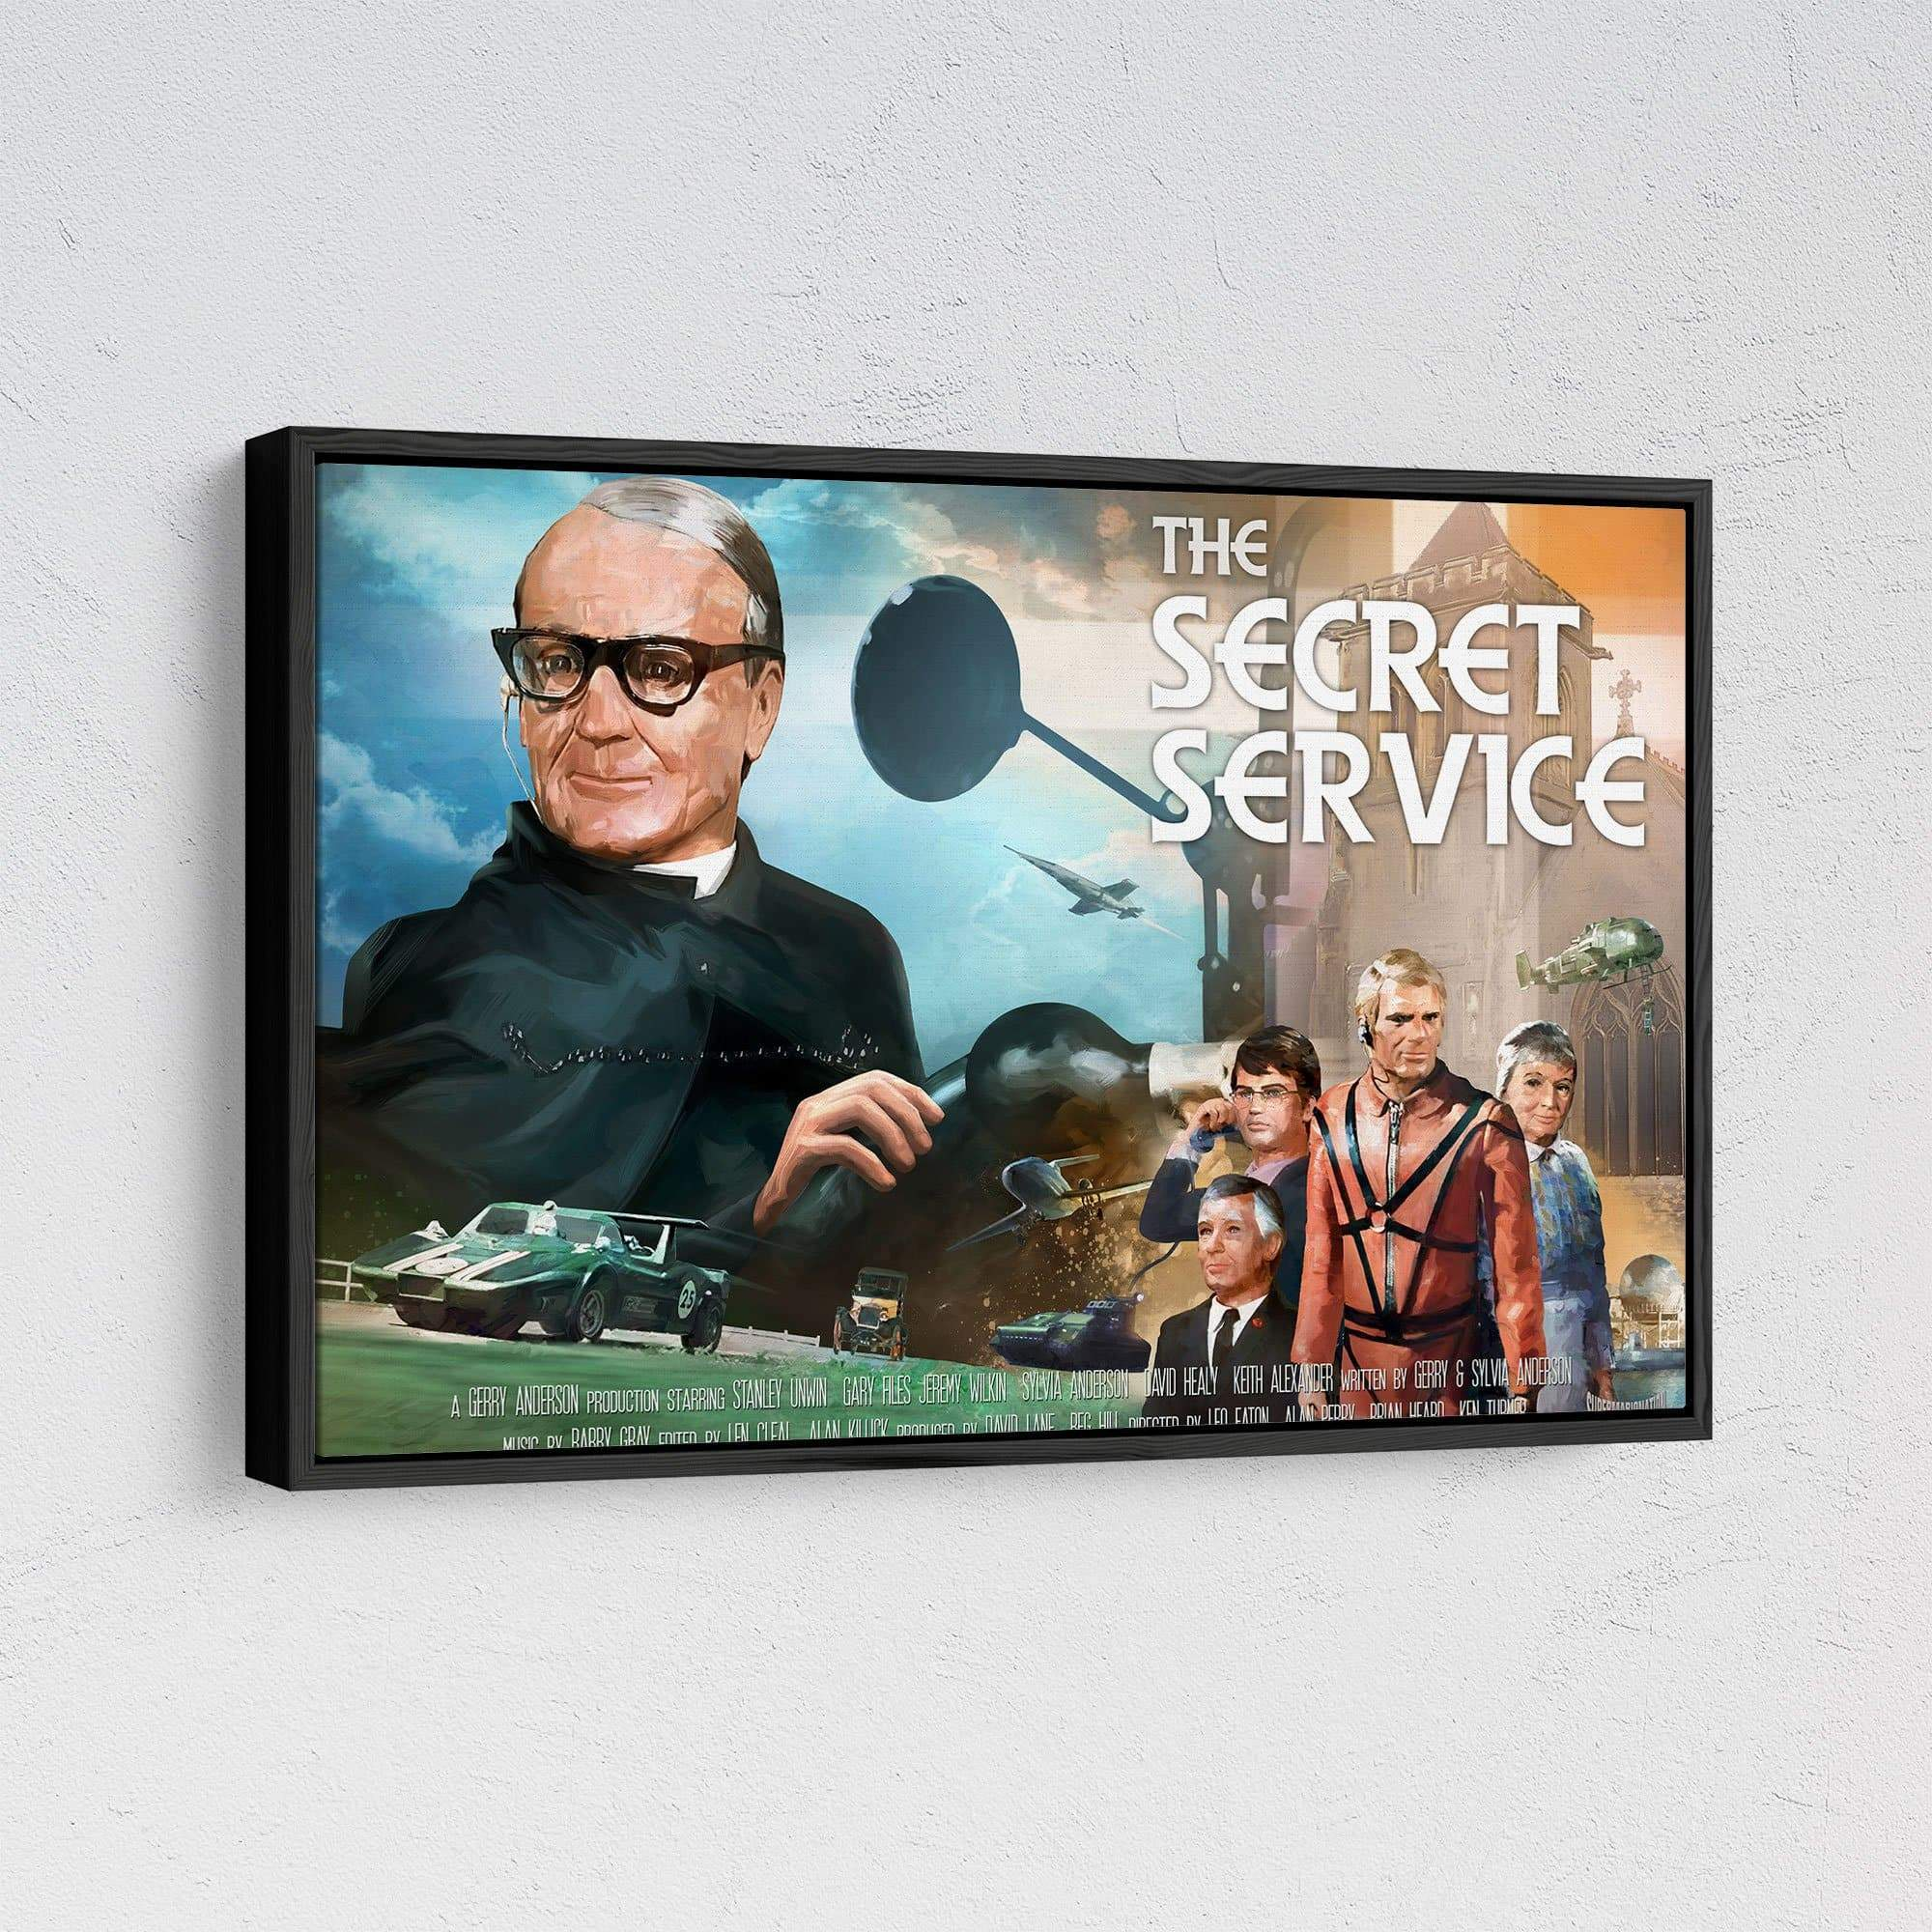 The Secret Service Framed Canvas Print [Official & Exclusive] - The Gerry Anderson Store